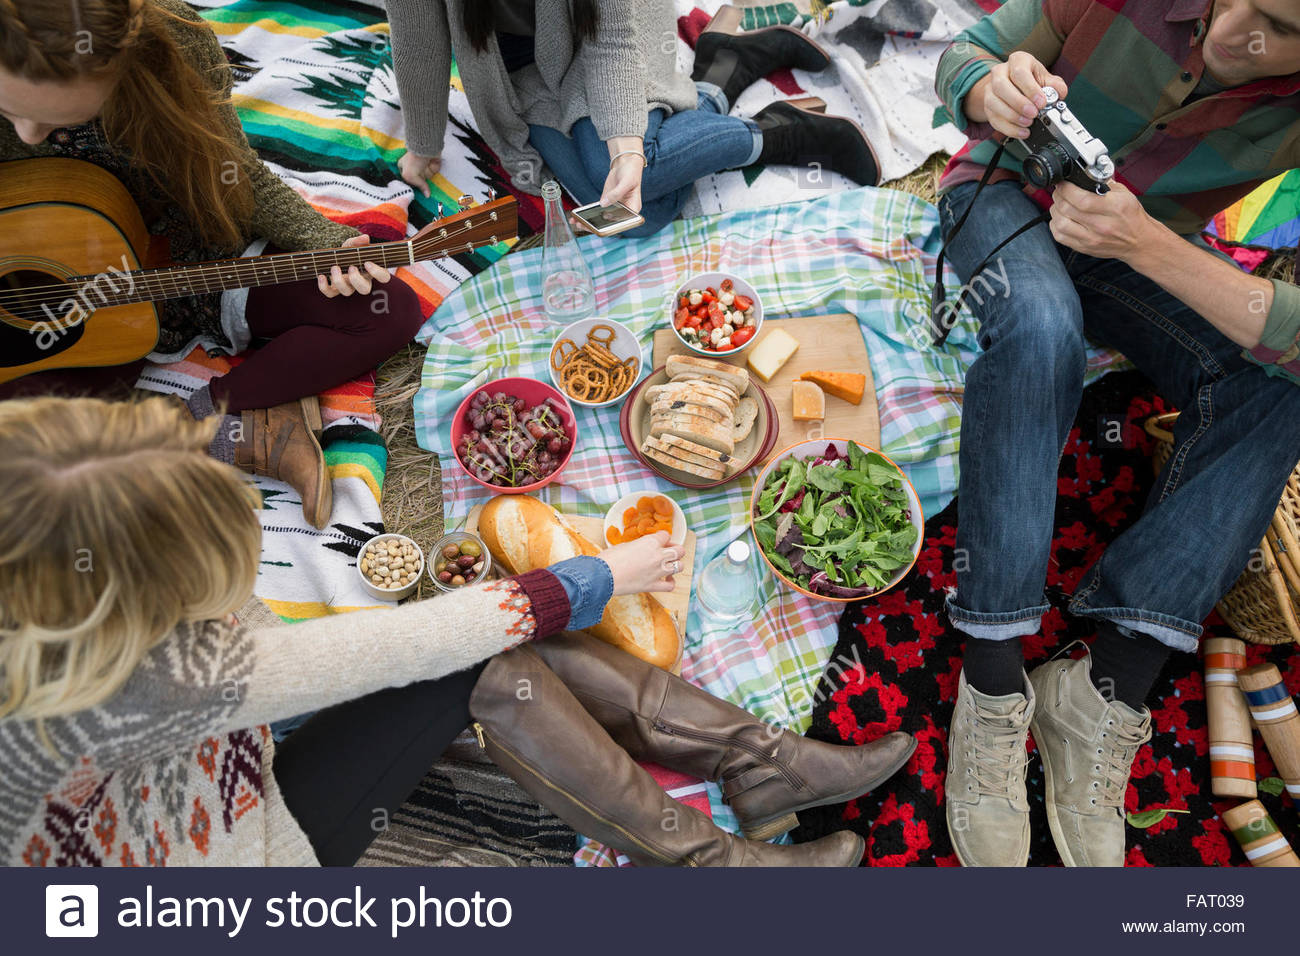 Overhead view friends enjoying picnic - Stock Image